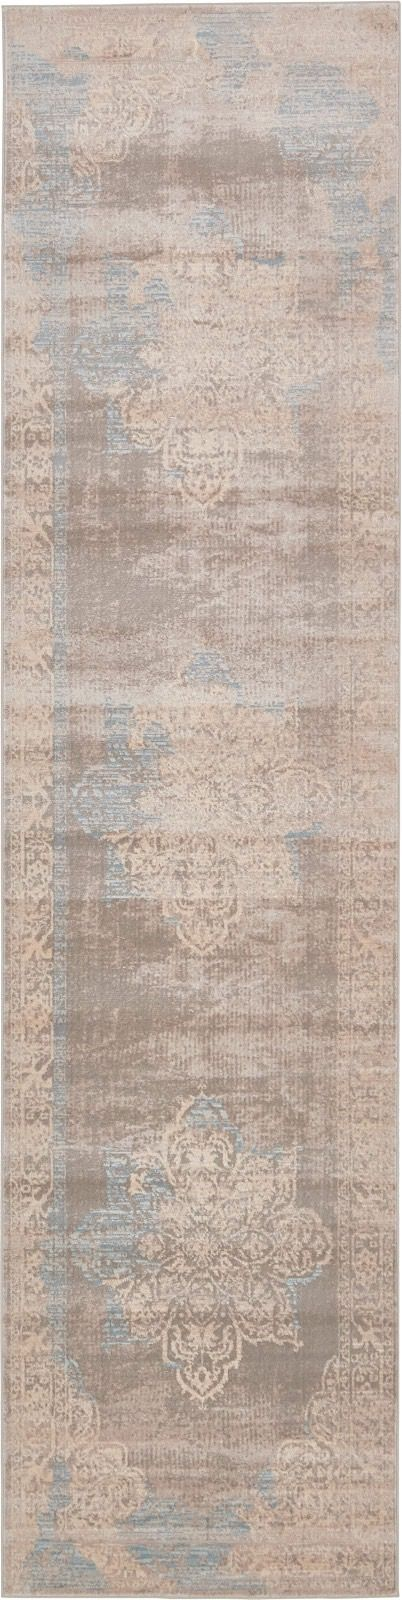 rugpal nantes transitional area rug collection